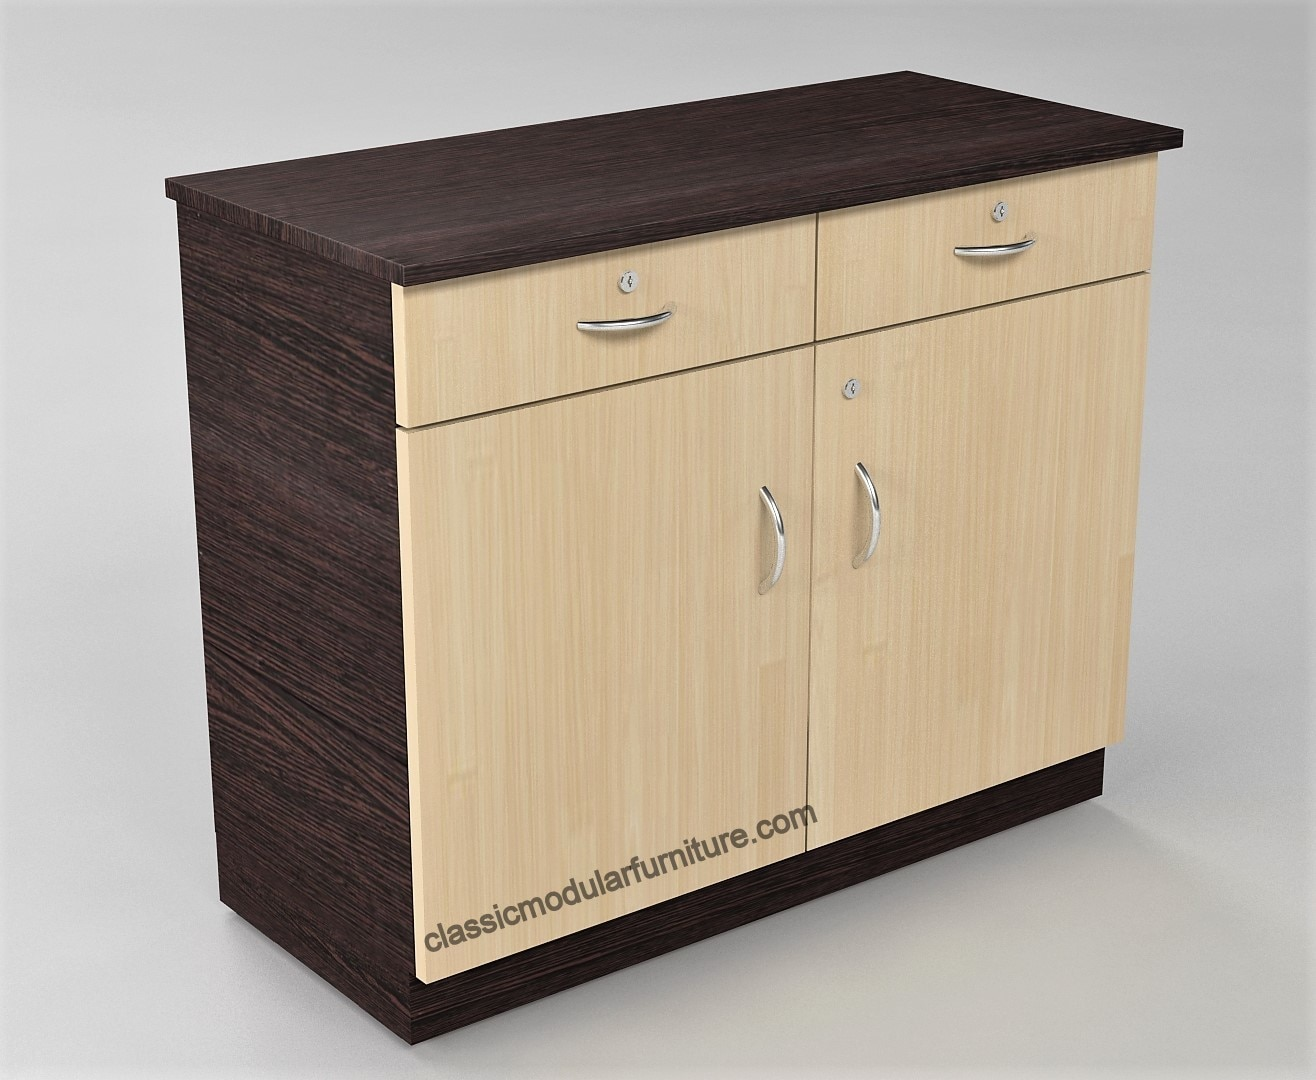 File Storage with 2 Drawers and 2 cabinets for Offices and Call Centers. Individual locks for all drawers and shutters. Made of high quality materials and finishing.